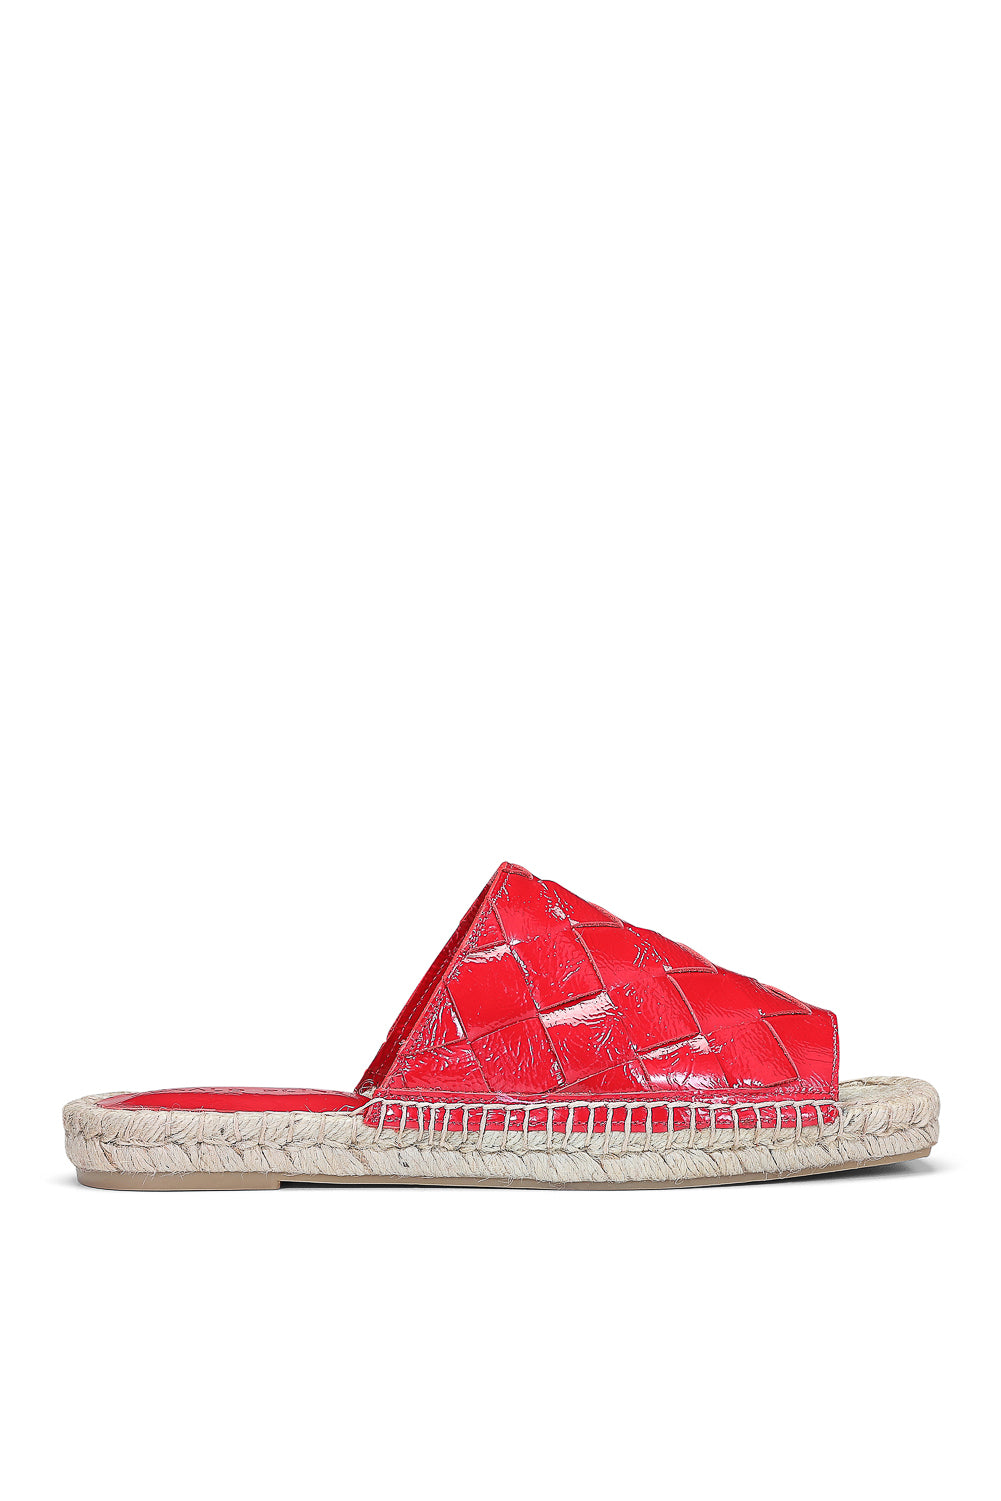 Nyce Soft Patent Espadrille Slide - Fire